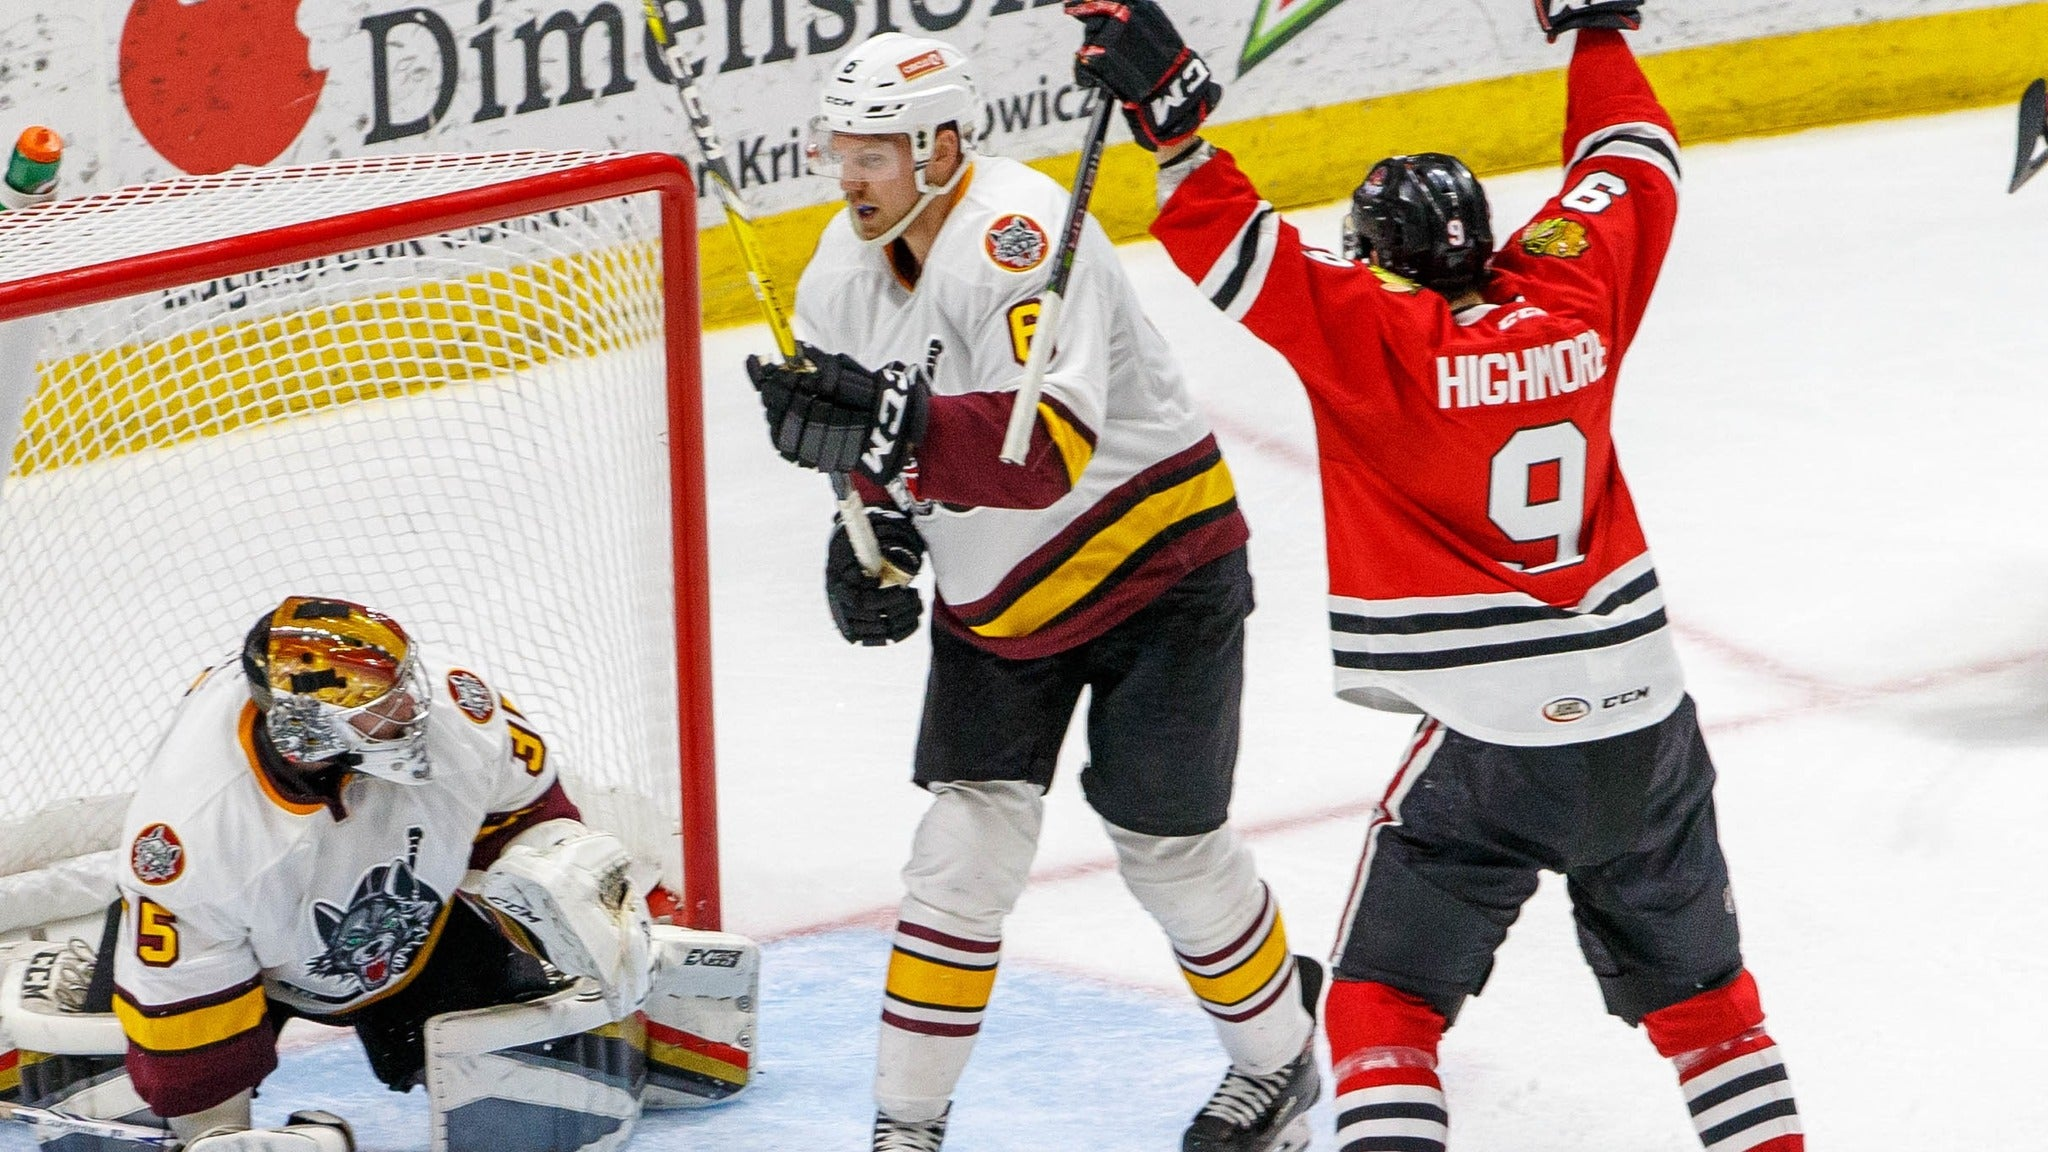 Rockford IceHogs vs. Belleville Senators